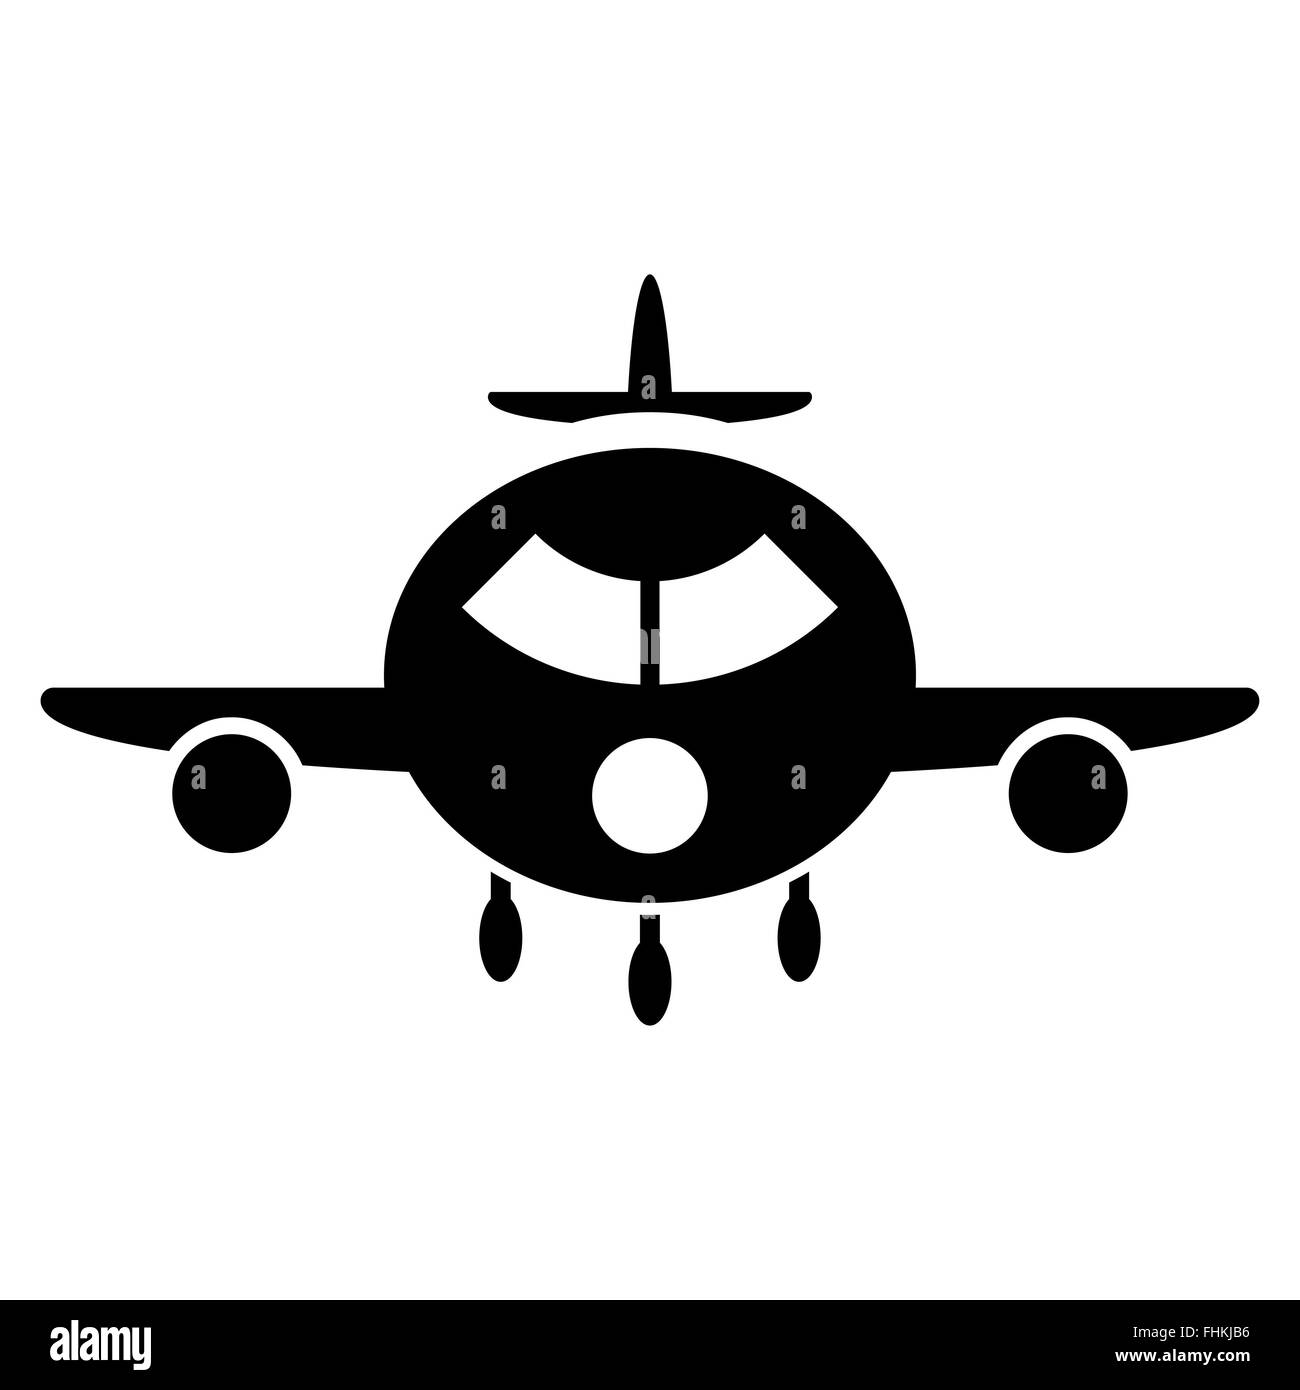 Cargo Aircraft Flat Icon - Stock Image